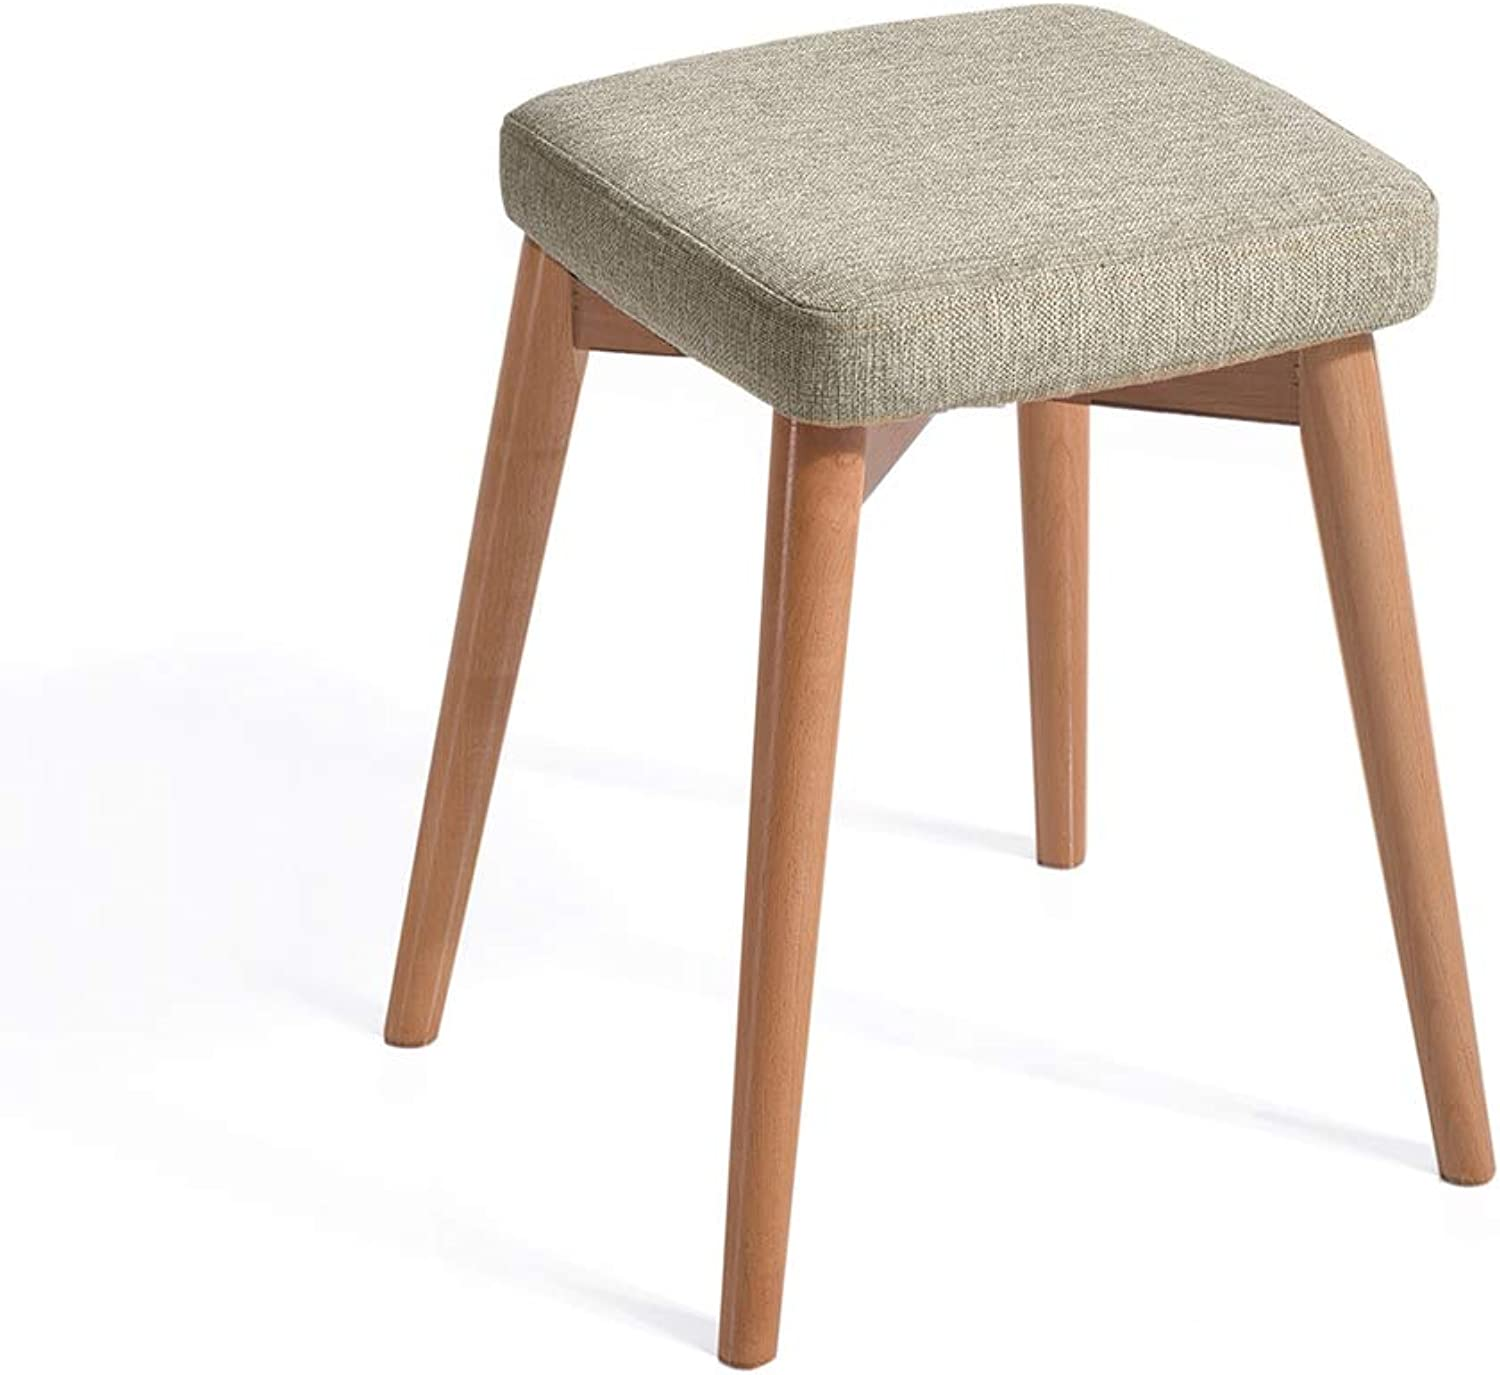 CXQ Fashion Creative Stool Solid Wood Dining Stool Fabric Dressing Stool Home Bench Plain color Square Stool